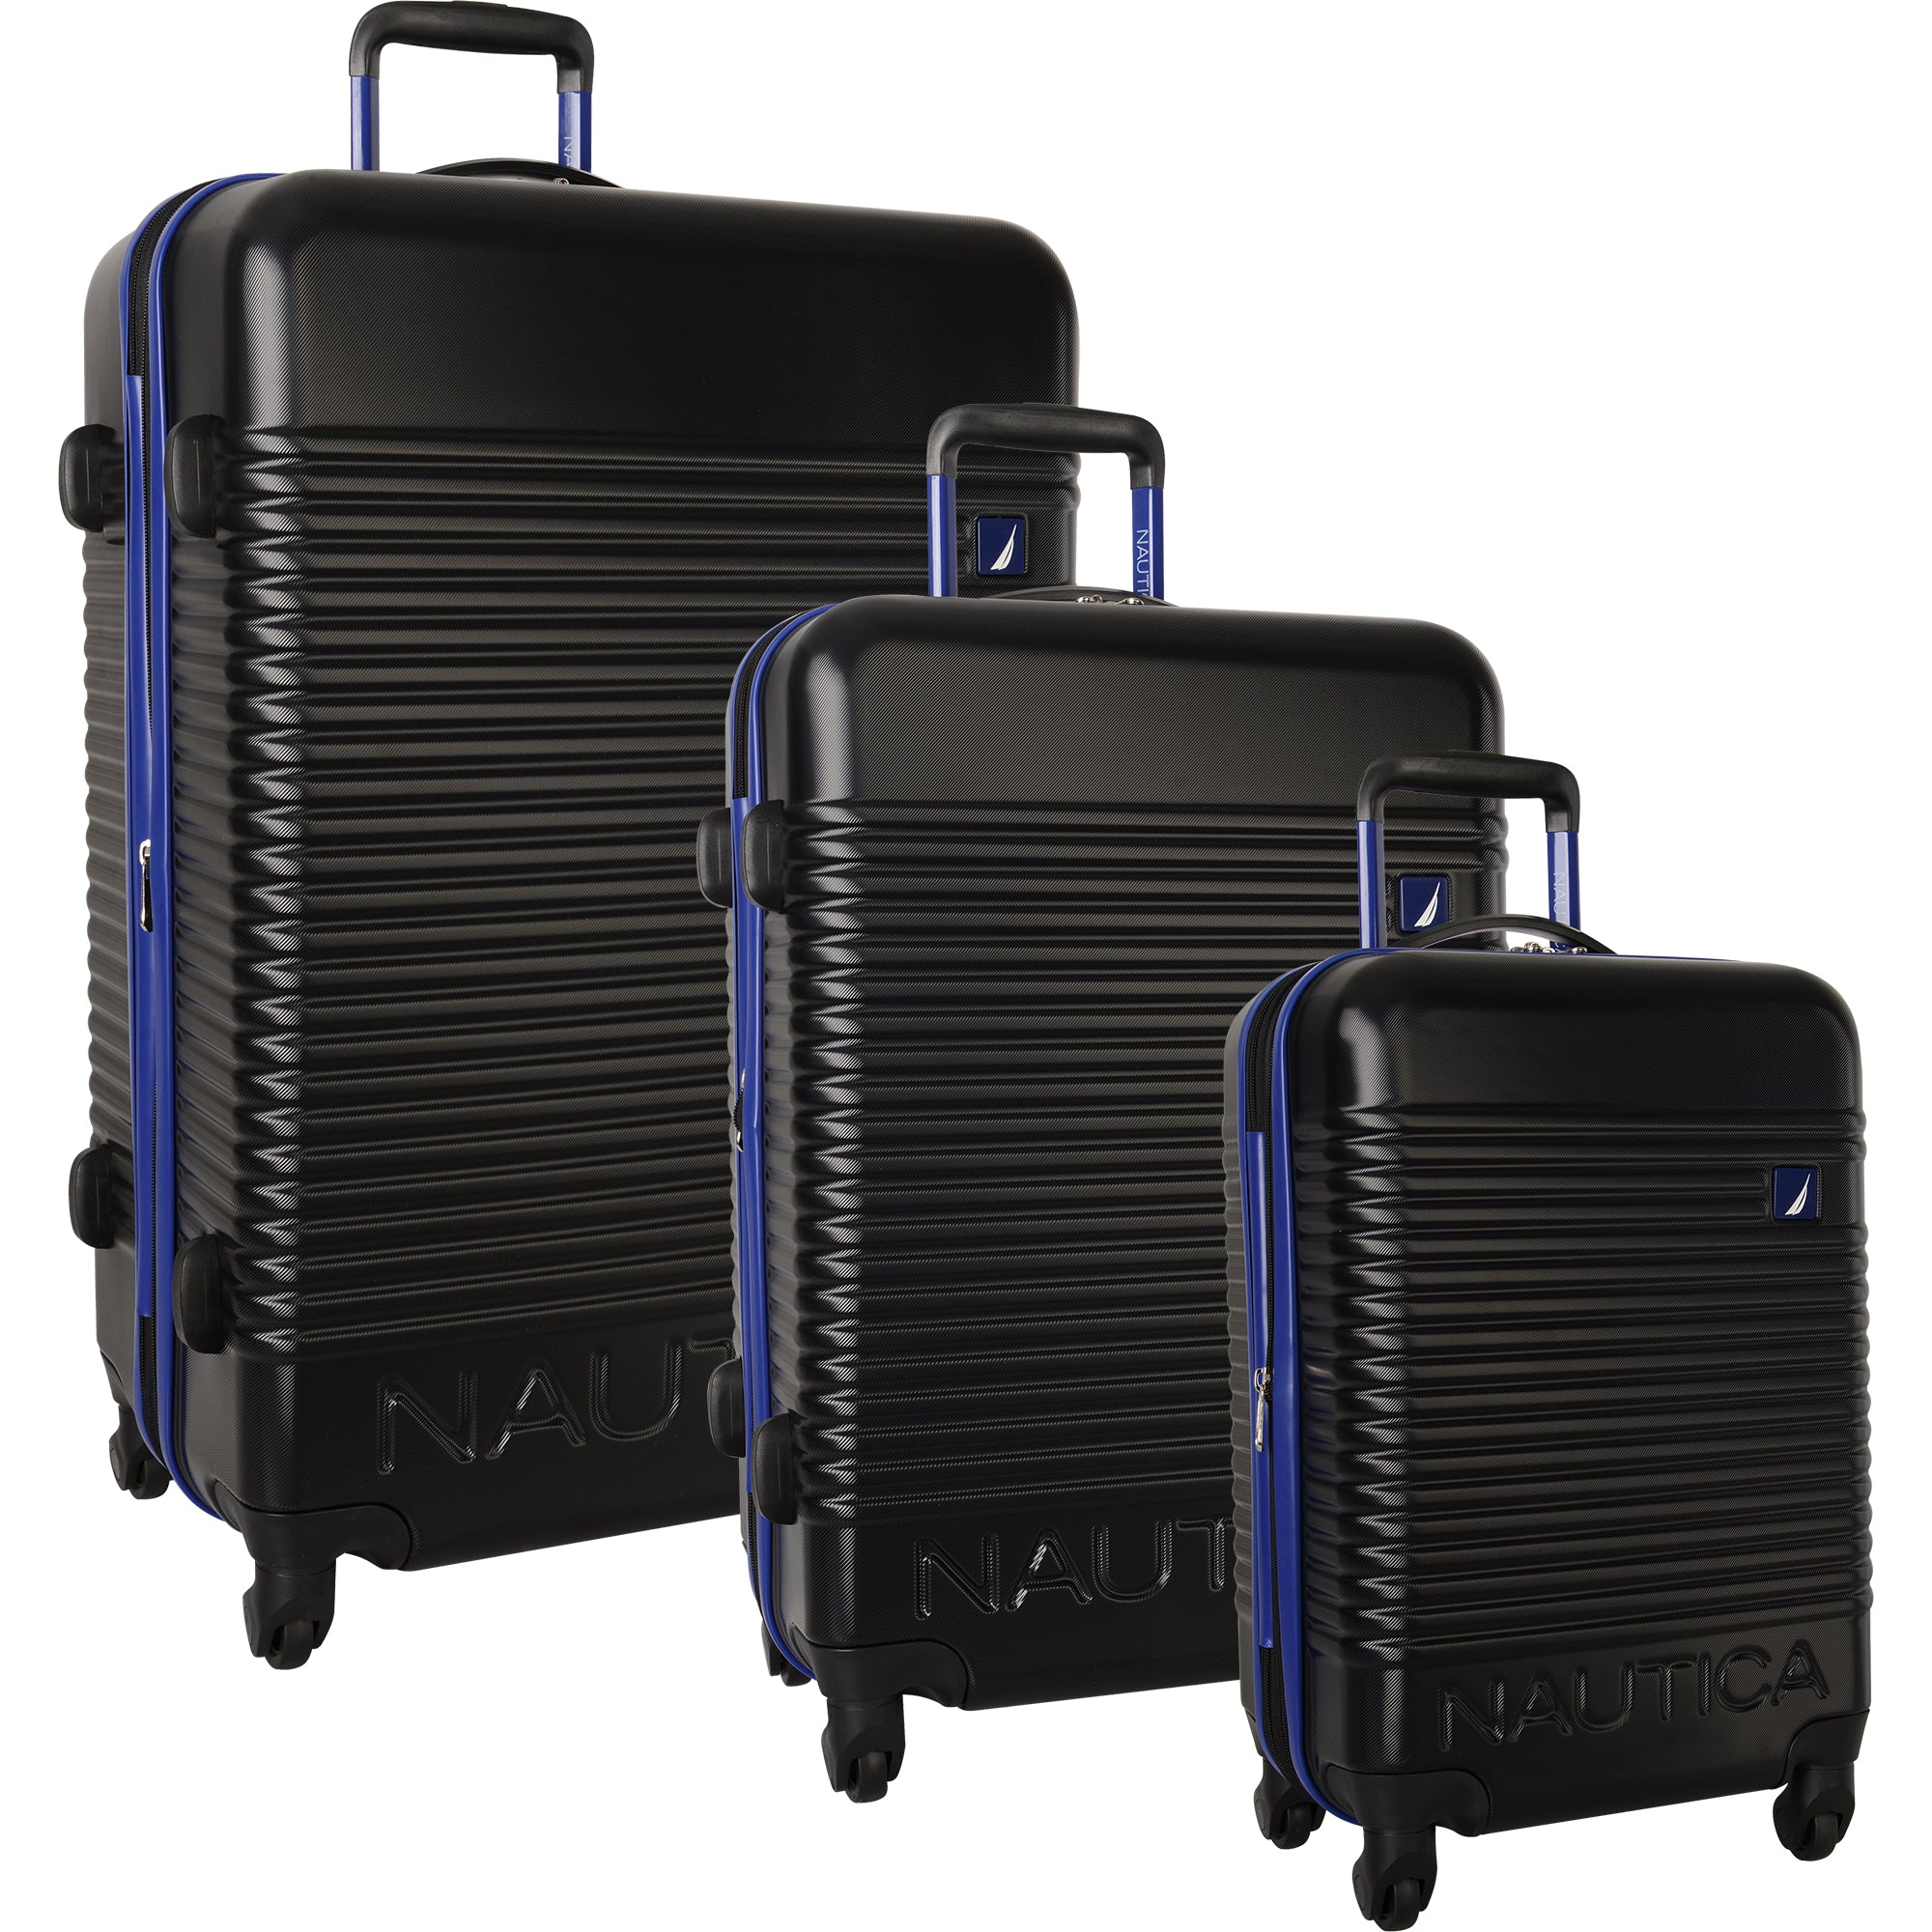 b3df115c20f9 Nautica Sunset Park 3 Piece Hardside Spinner Luggage Set